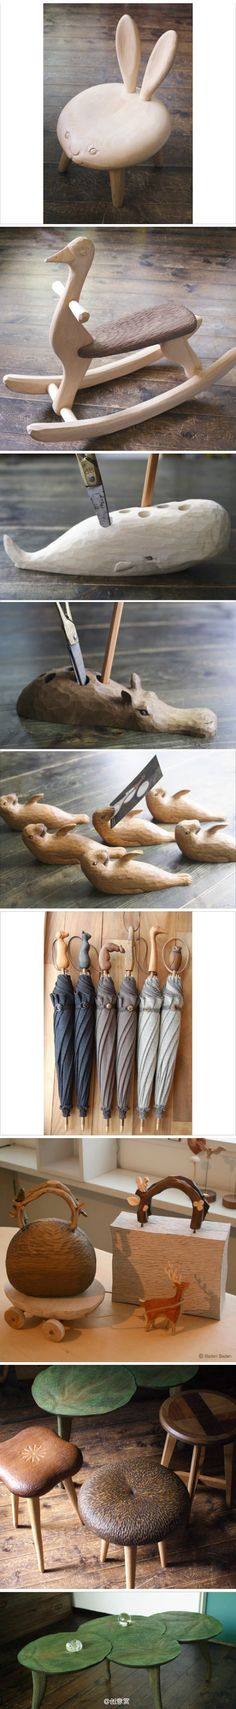 So many cute things made out of wood.